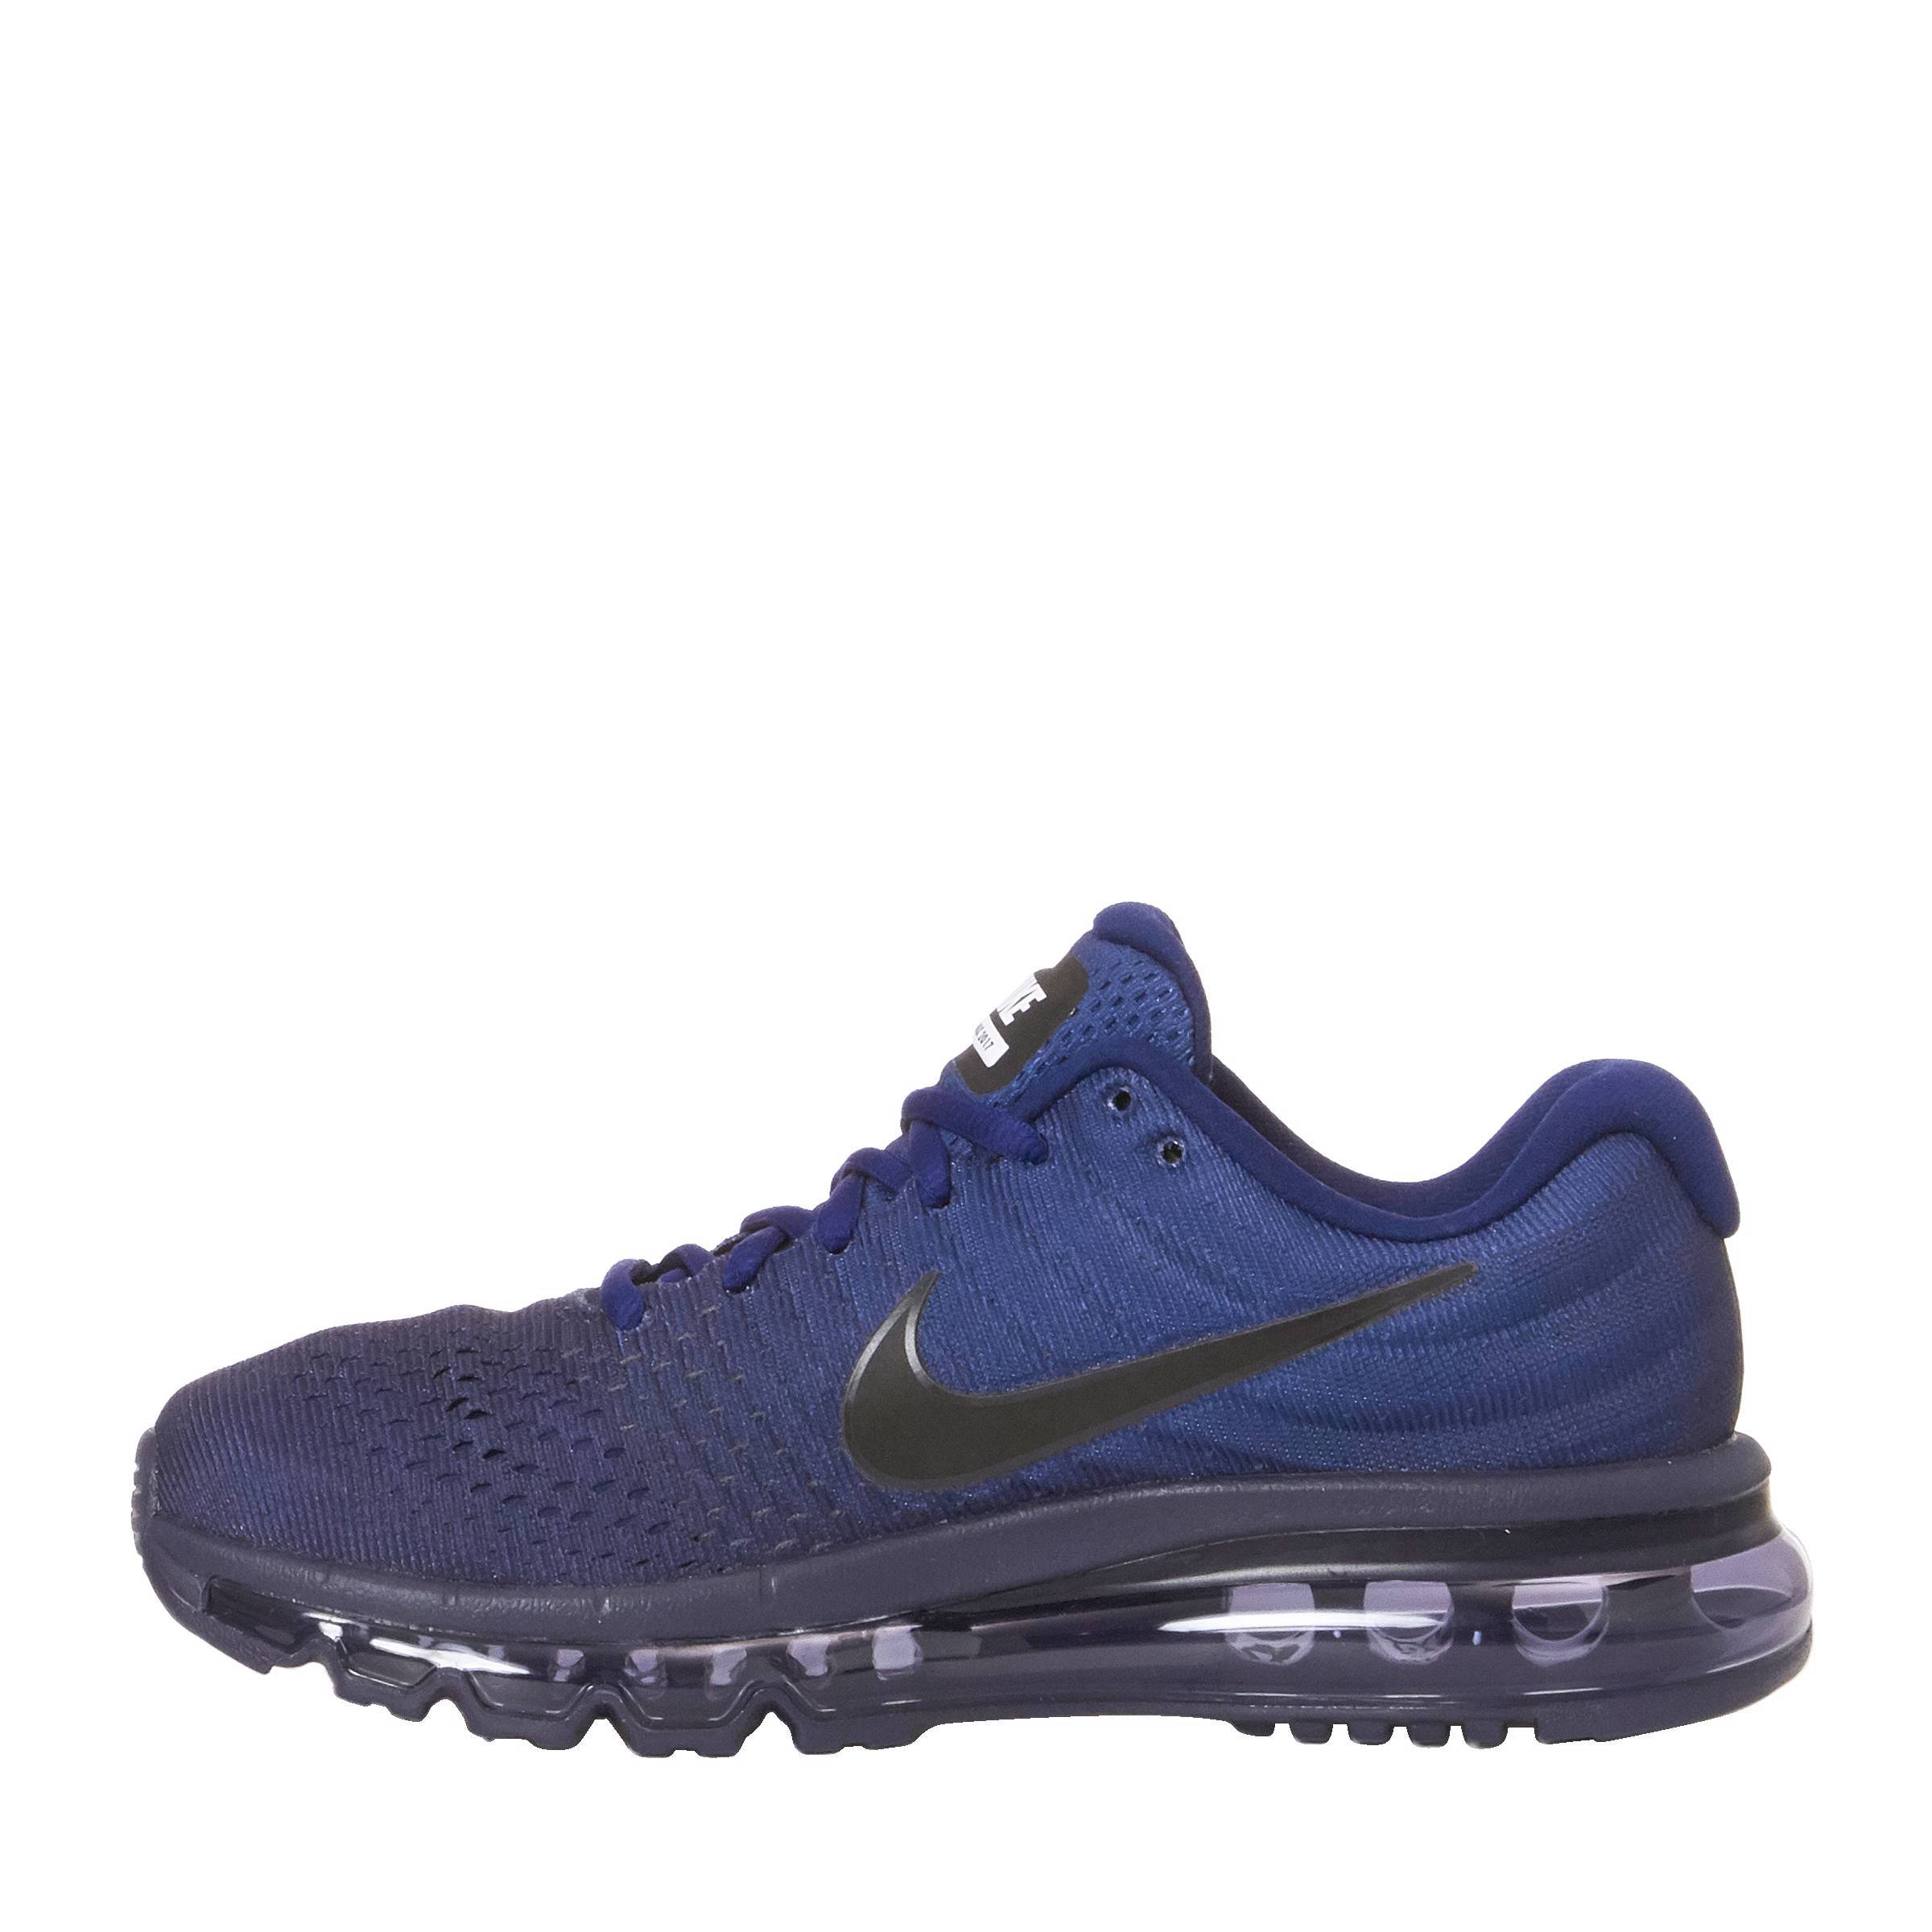 3a20cca83a48ee nike-air-max-2017-sneakers-donkerblauw-0887225864835.jpg